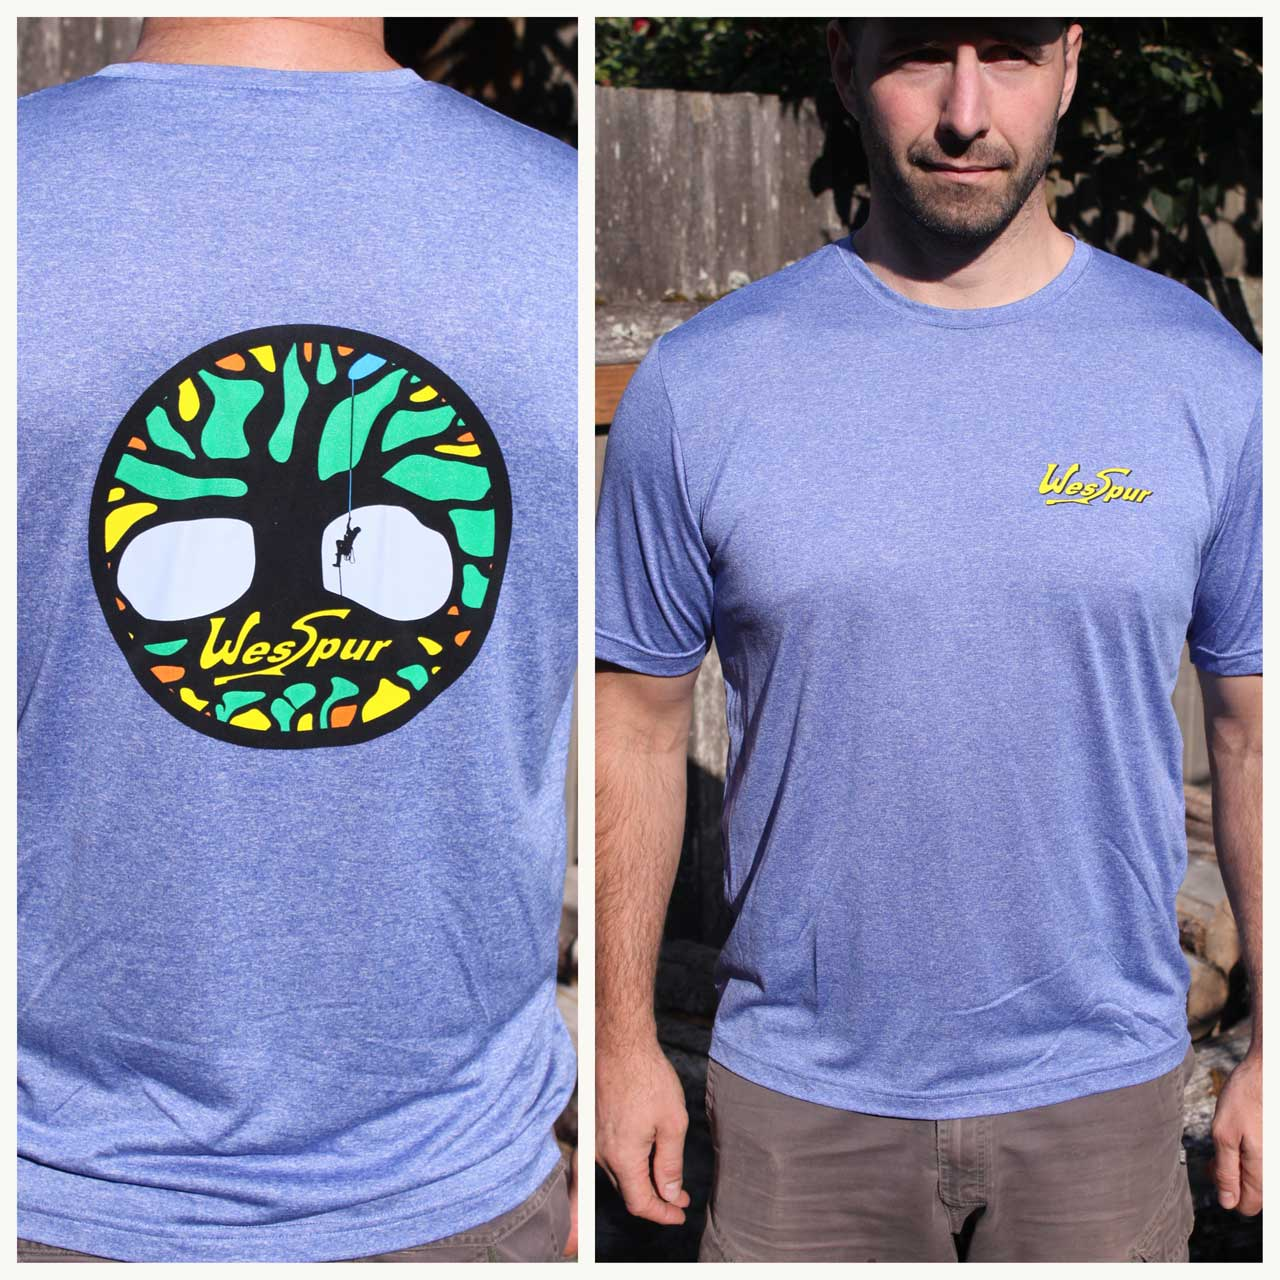 WesSpur 'Tree of Life' Performance Tee-Shirt, Men's image